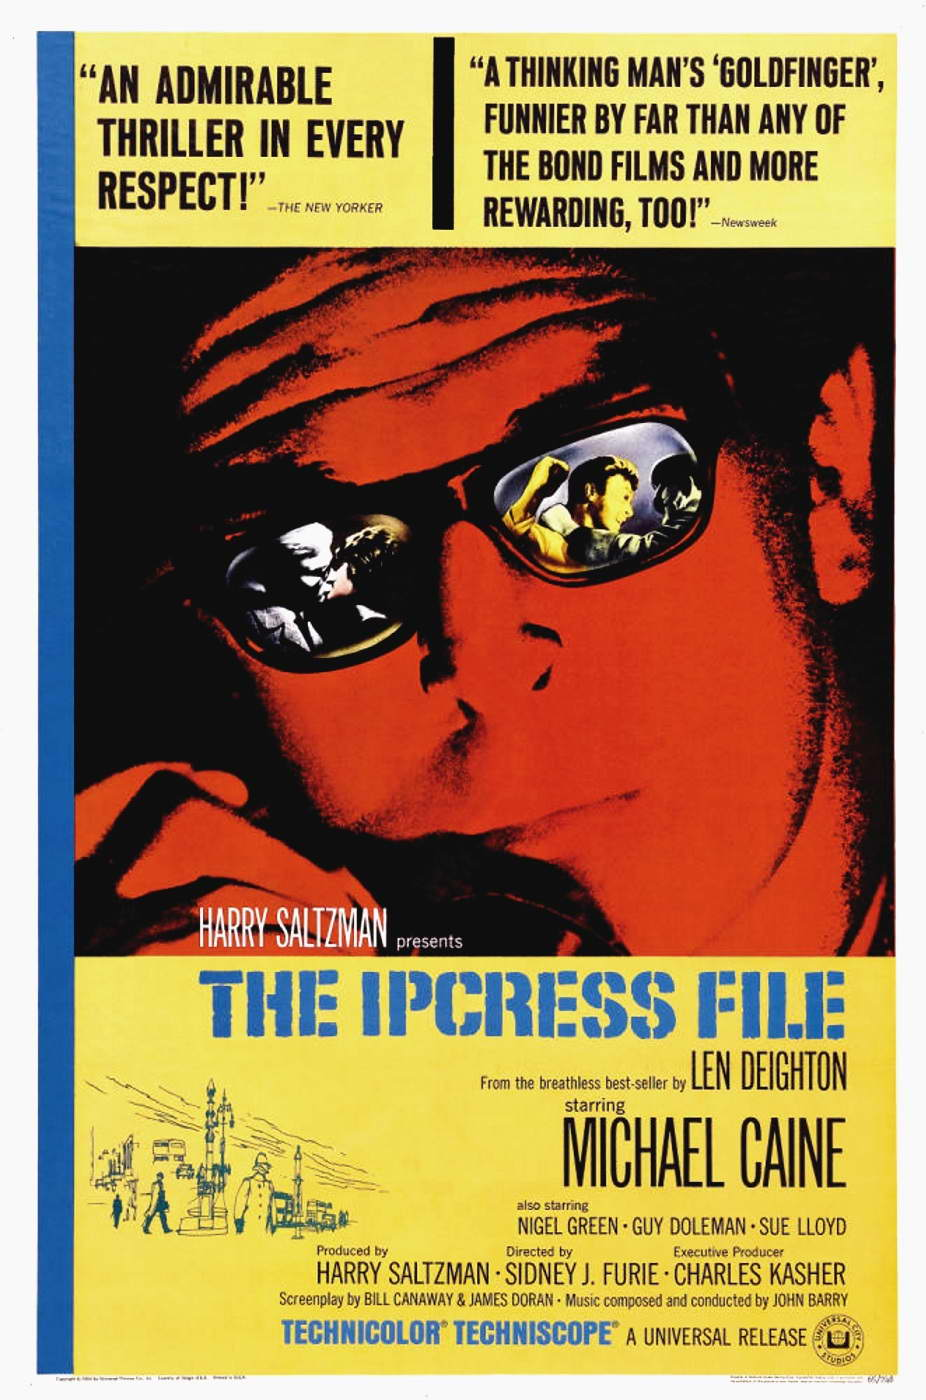 http://www.astortheatre.net.au/wp-content/uploads/IPCRESS-FILE.jpg